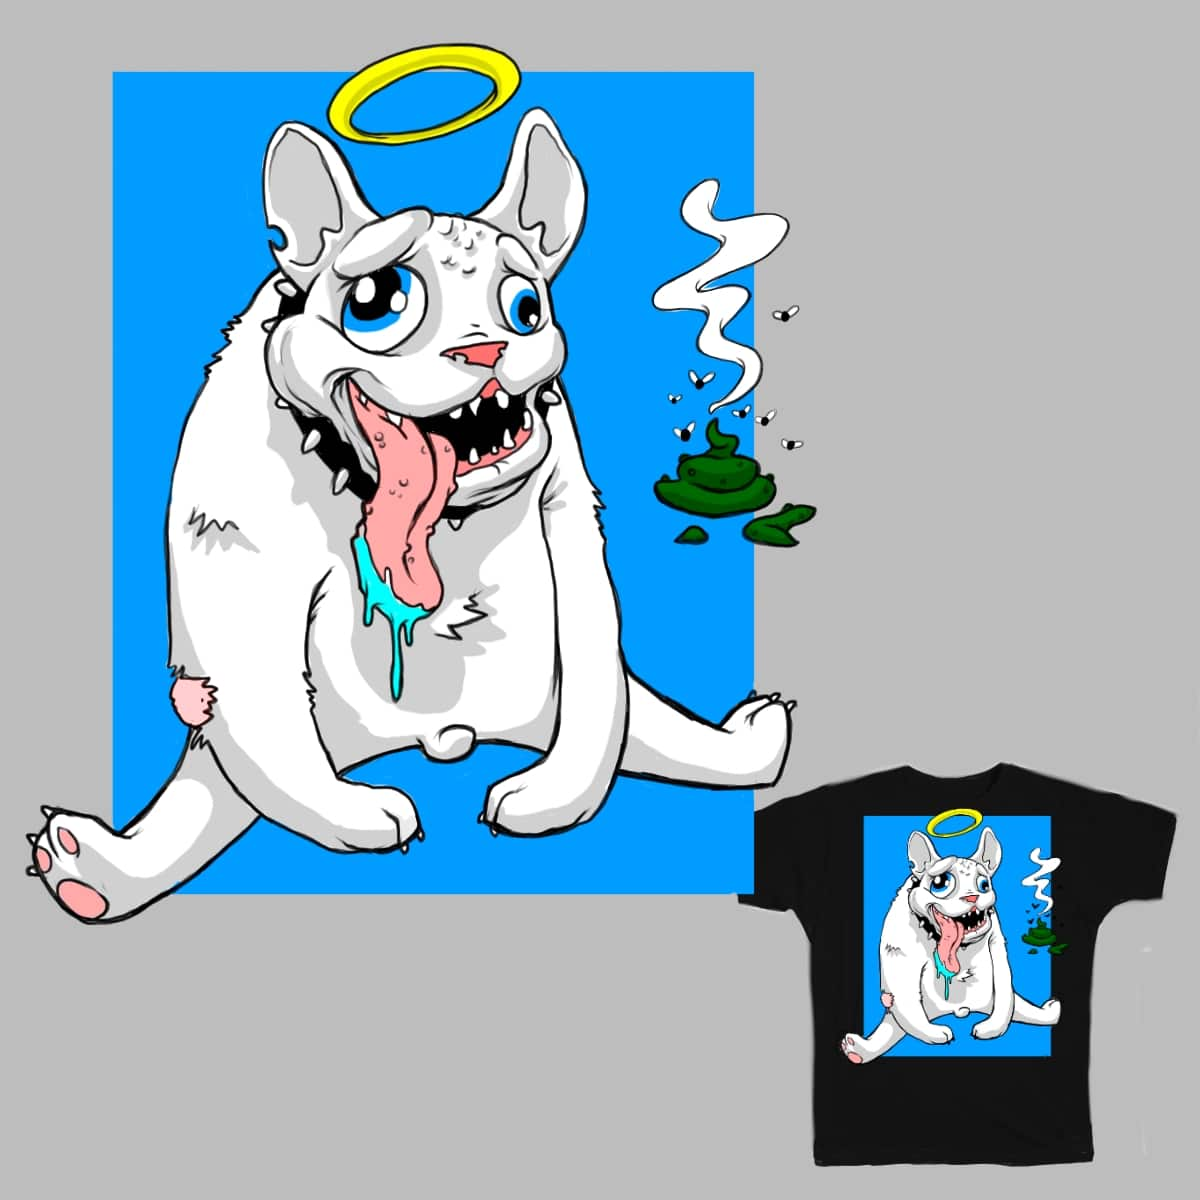 good doggy by godzillaeater15 on Threadless